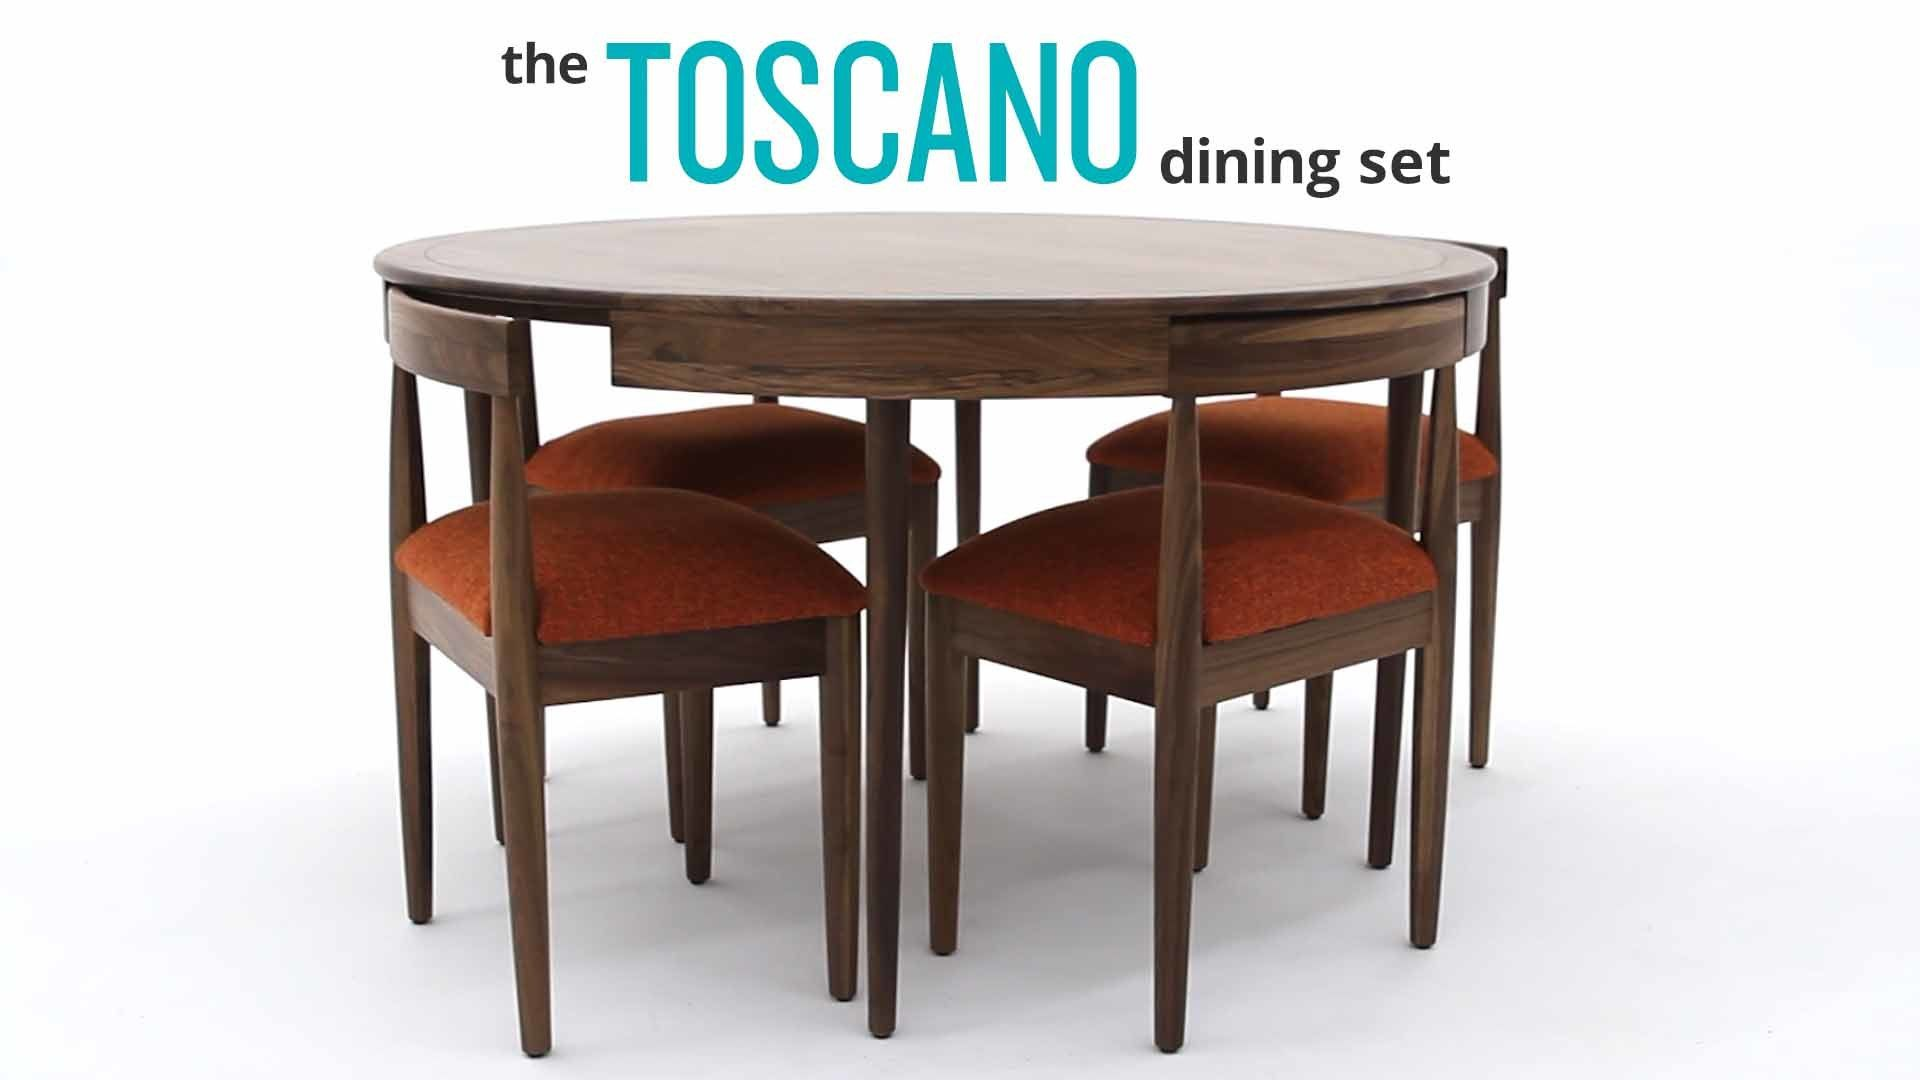 Toscano Dining Set Mcm Dining Room Dining Set Dining Table